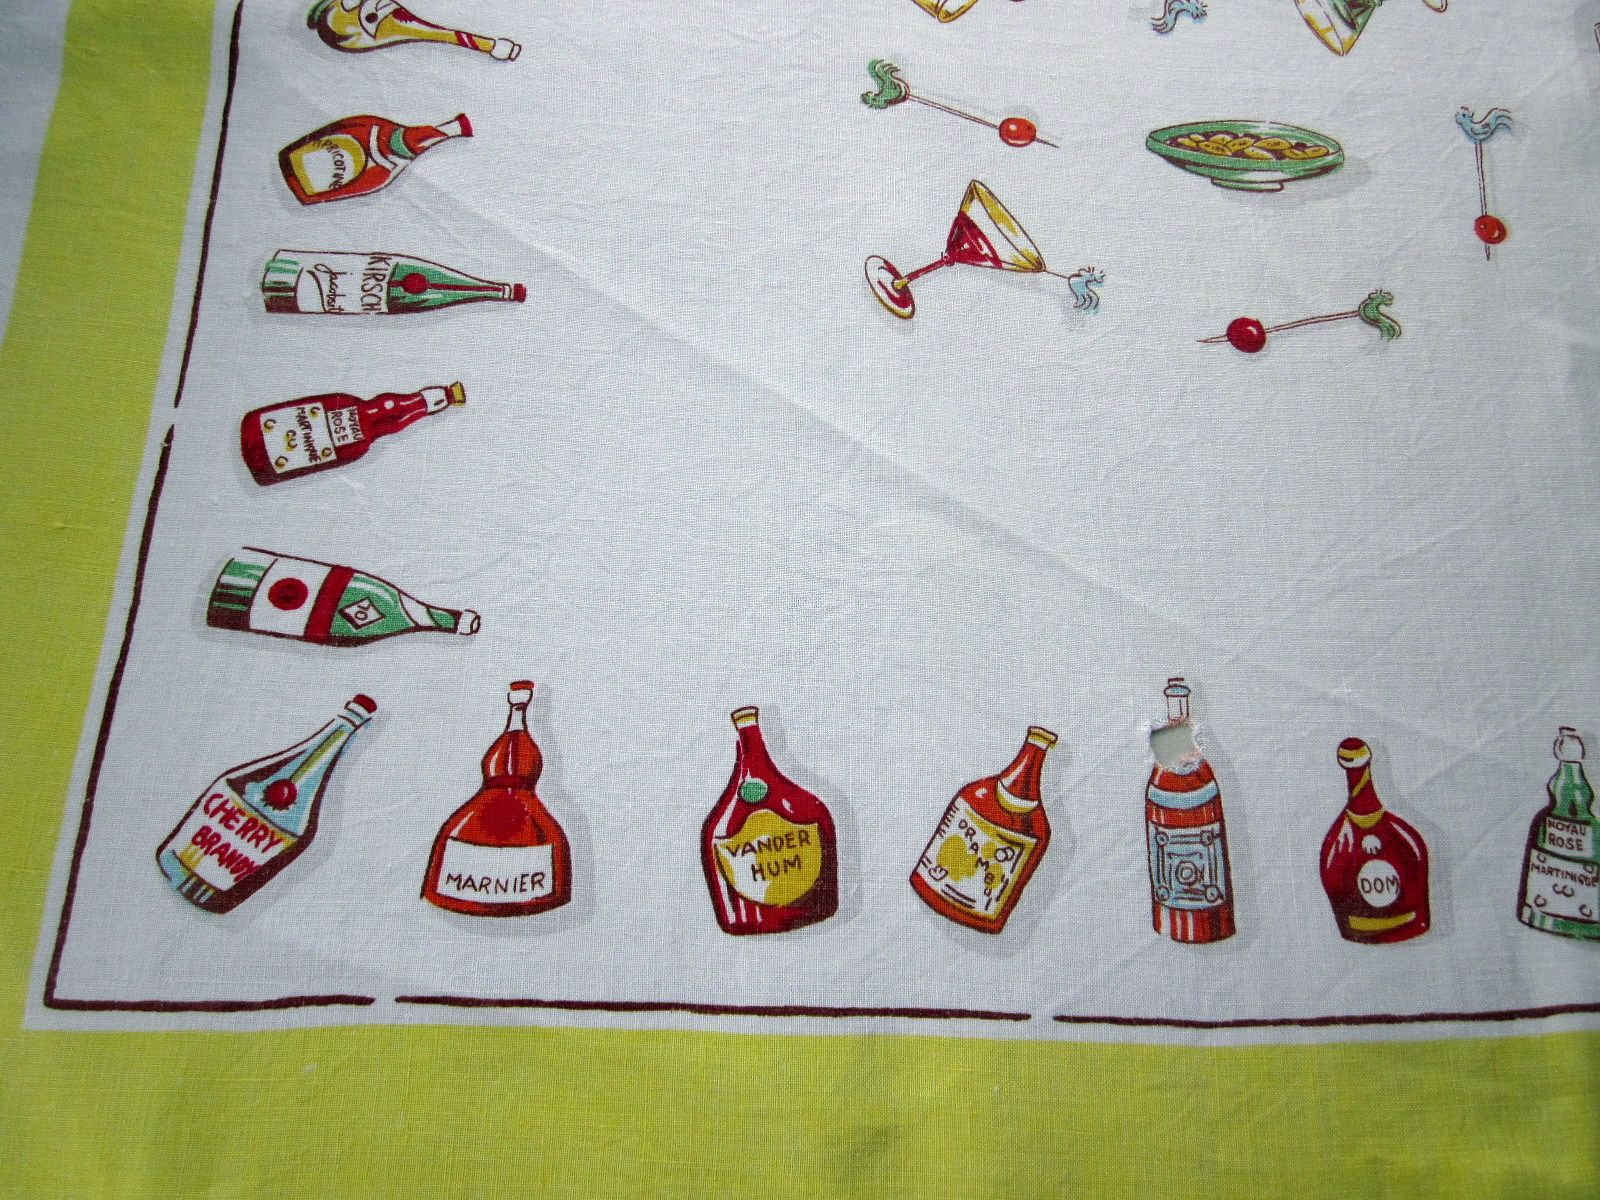 Cocktails Liquor Bottles Linen Cutter? Novelty Vintage Tablecloth (50 X 50)